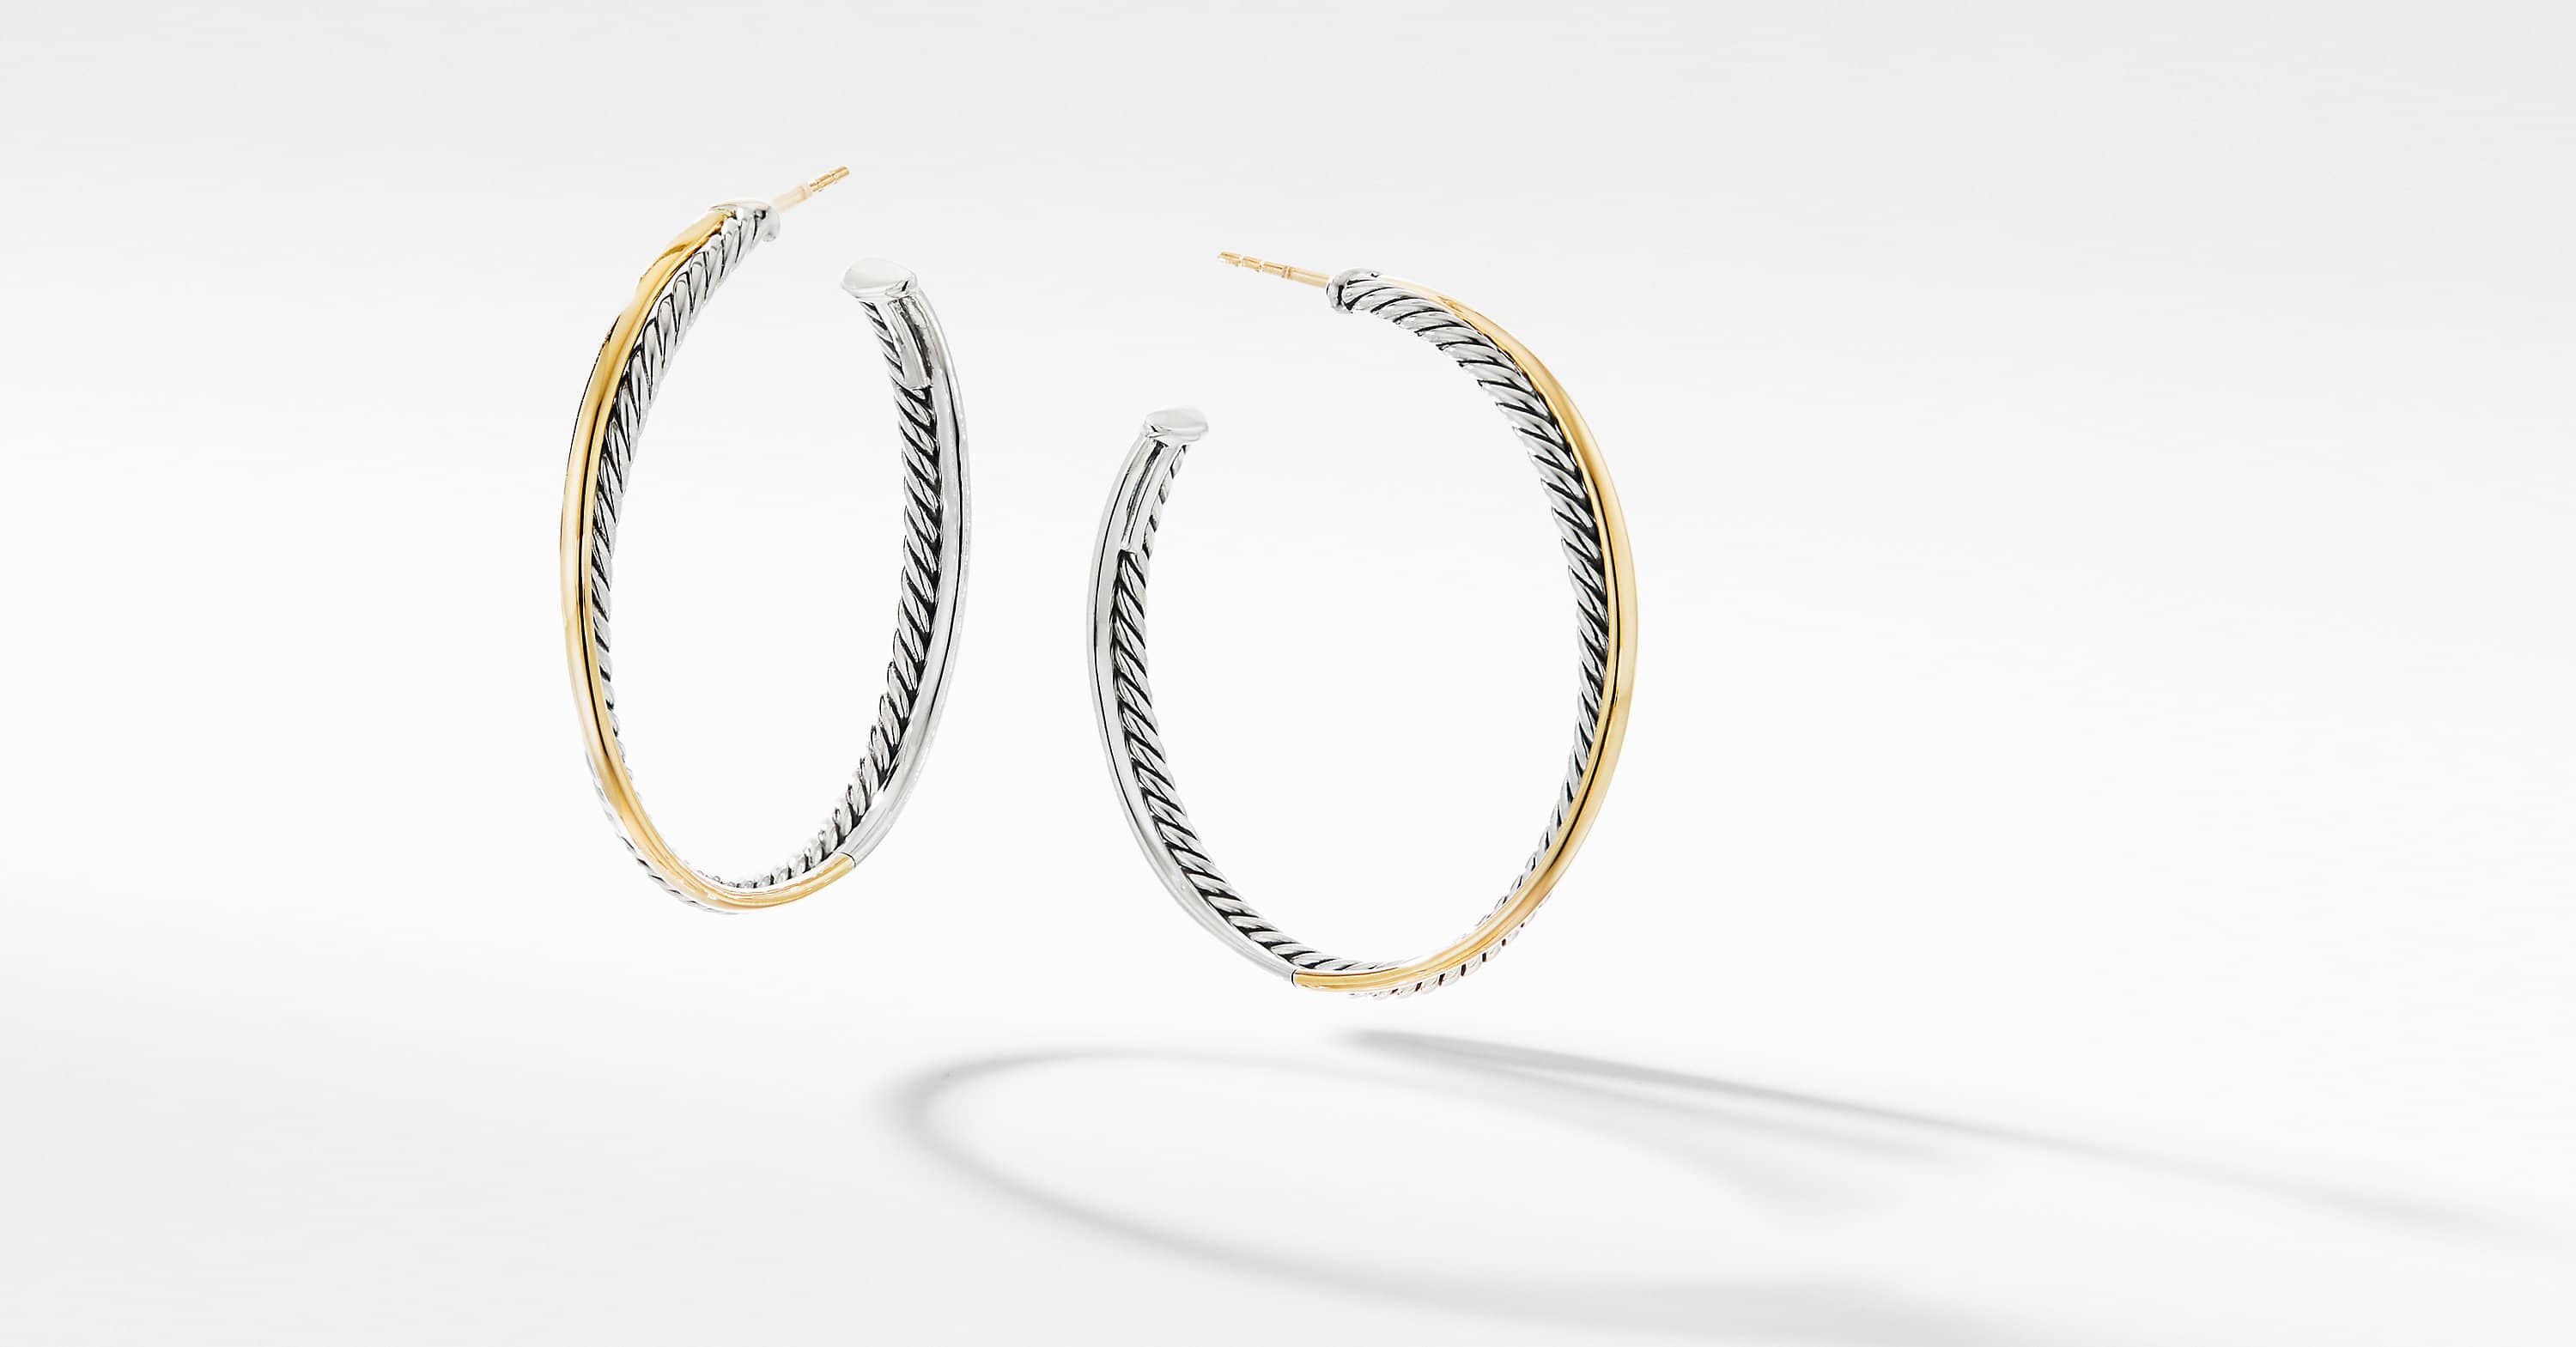 The Crossover Collection XL Hoop Earrings with 18K Yellow Gold